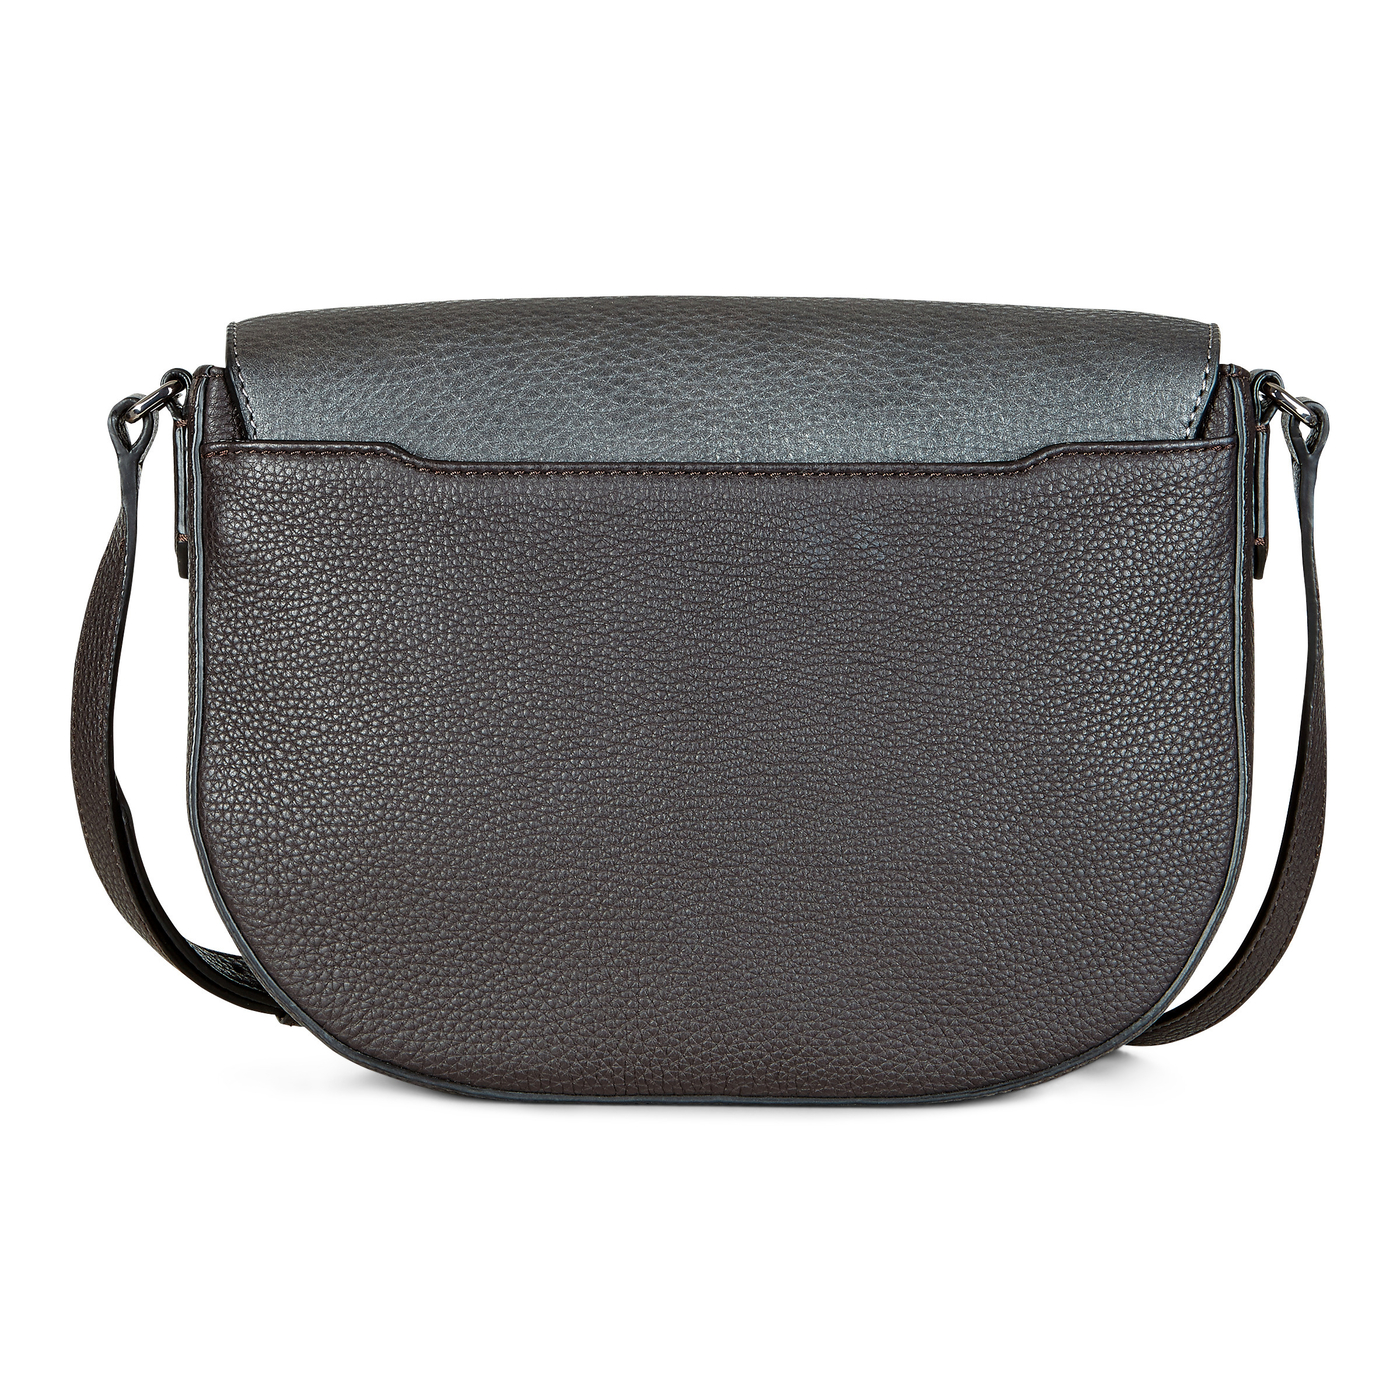 ECCO KAUAI Ikon22 Medium Saddle Bag